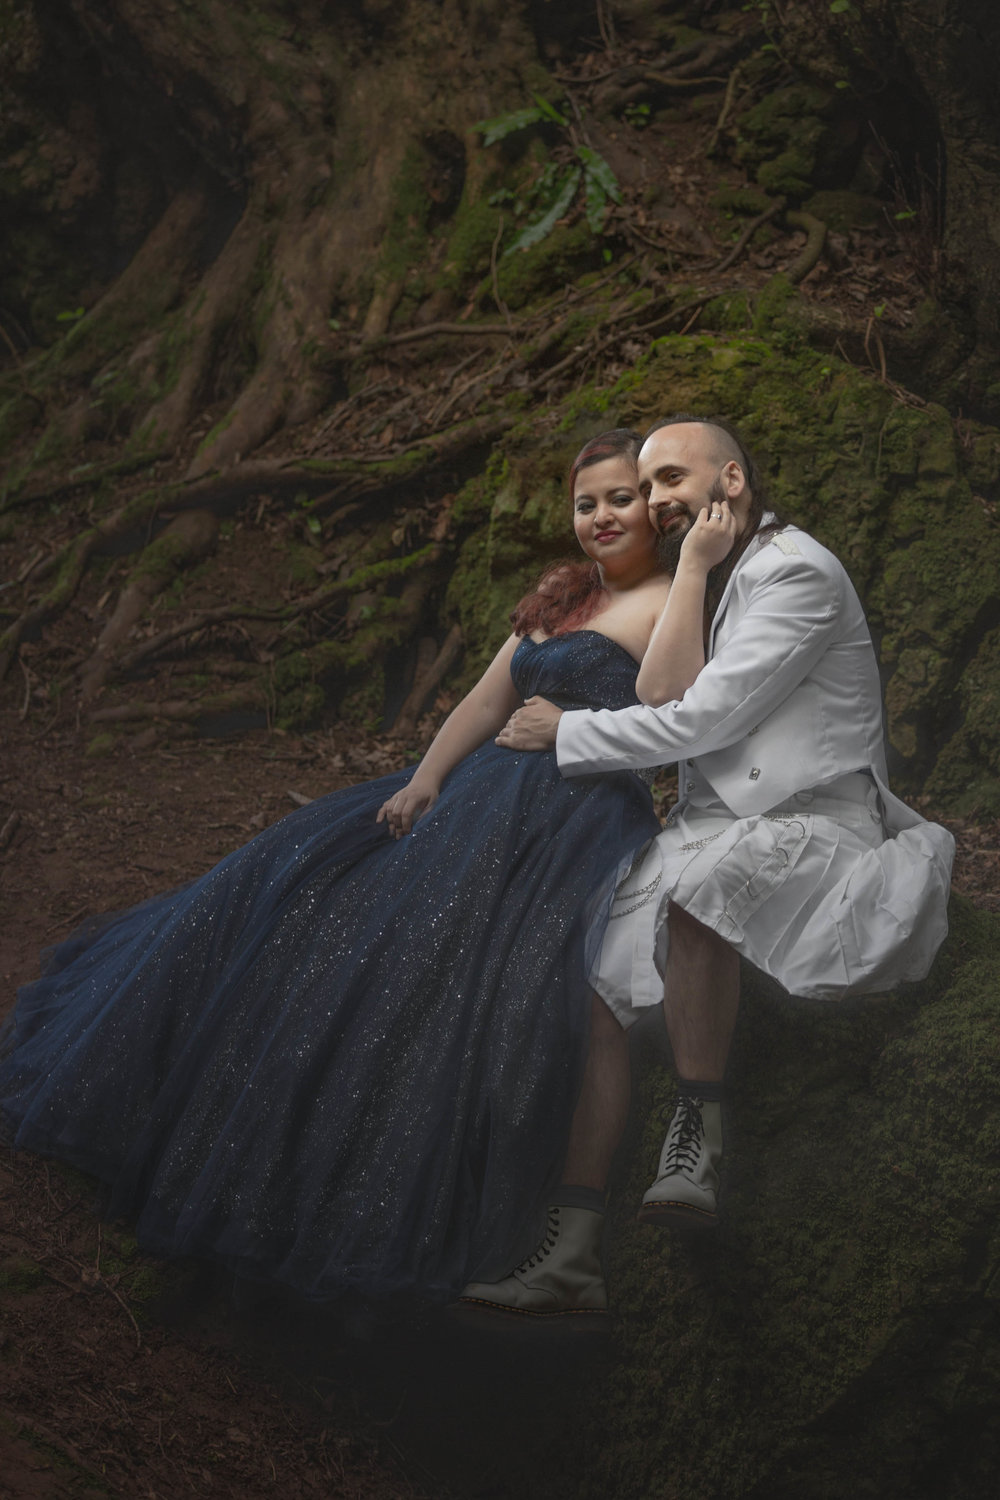 Puzzlewood-fairytale-fairy-forest-wood-prewedding-photoshoot-star-wars-couple-shoot-asian-wedding-photographer-natalia-smith-photography-9.jpg